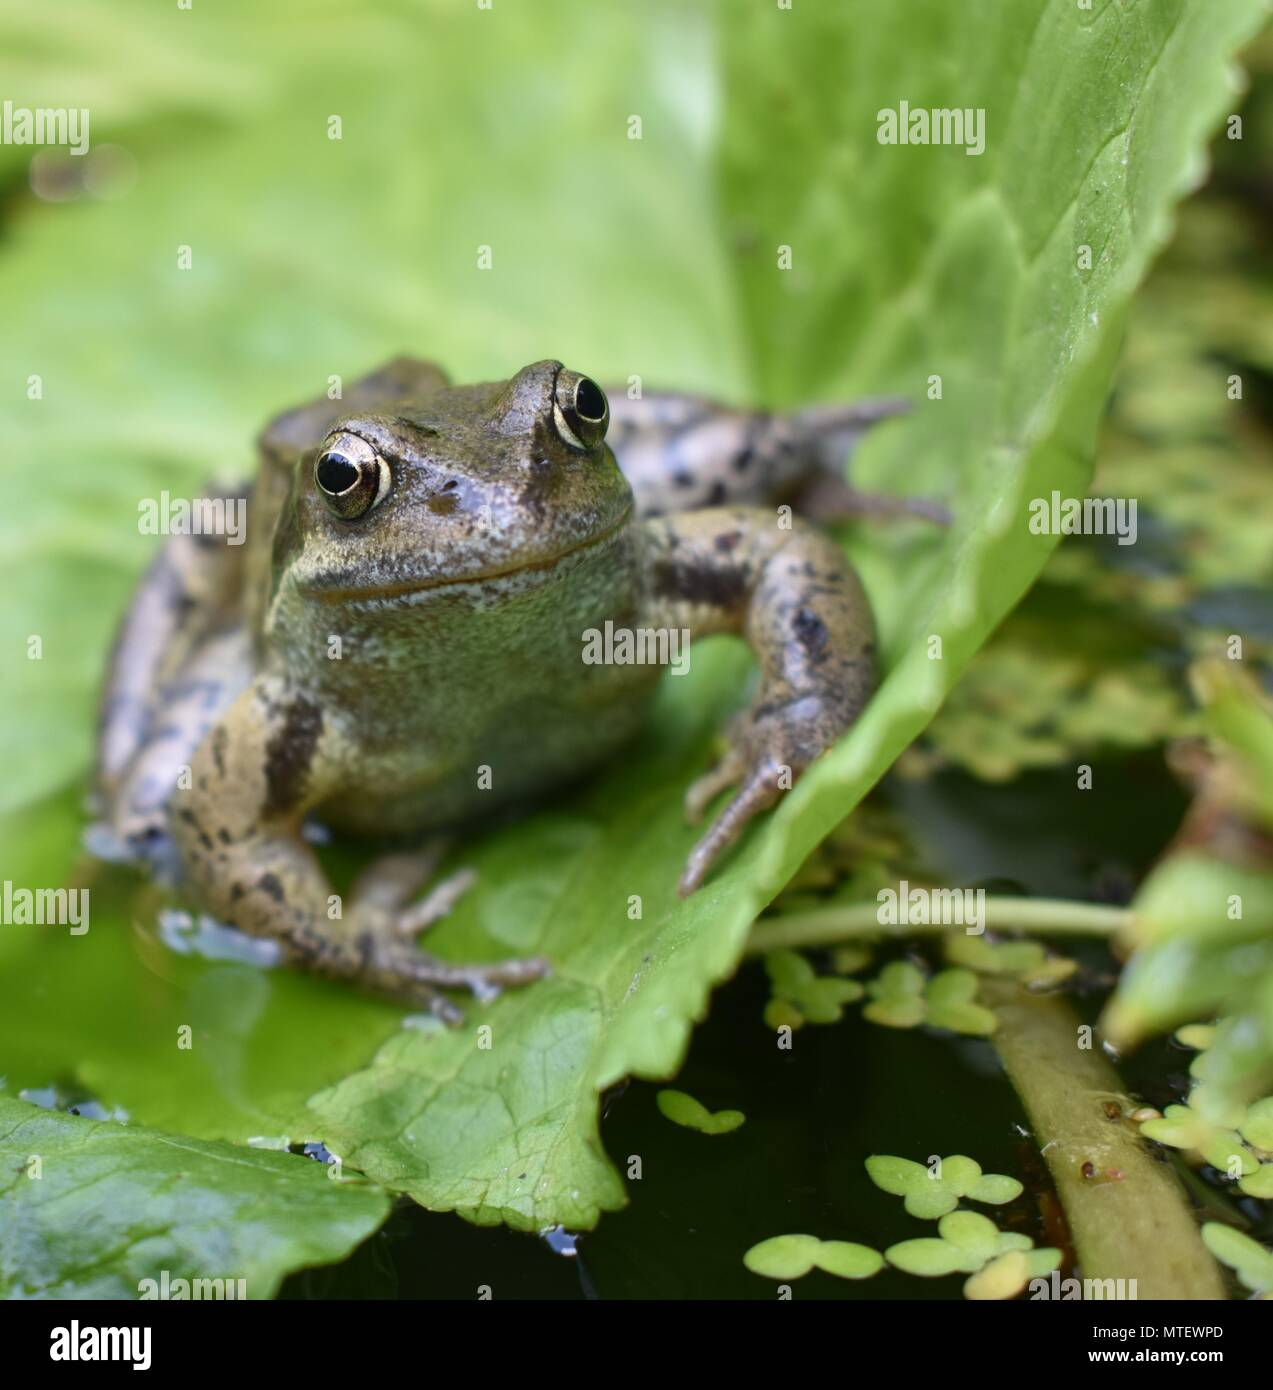 Frog in a local pond - Stock Image